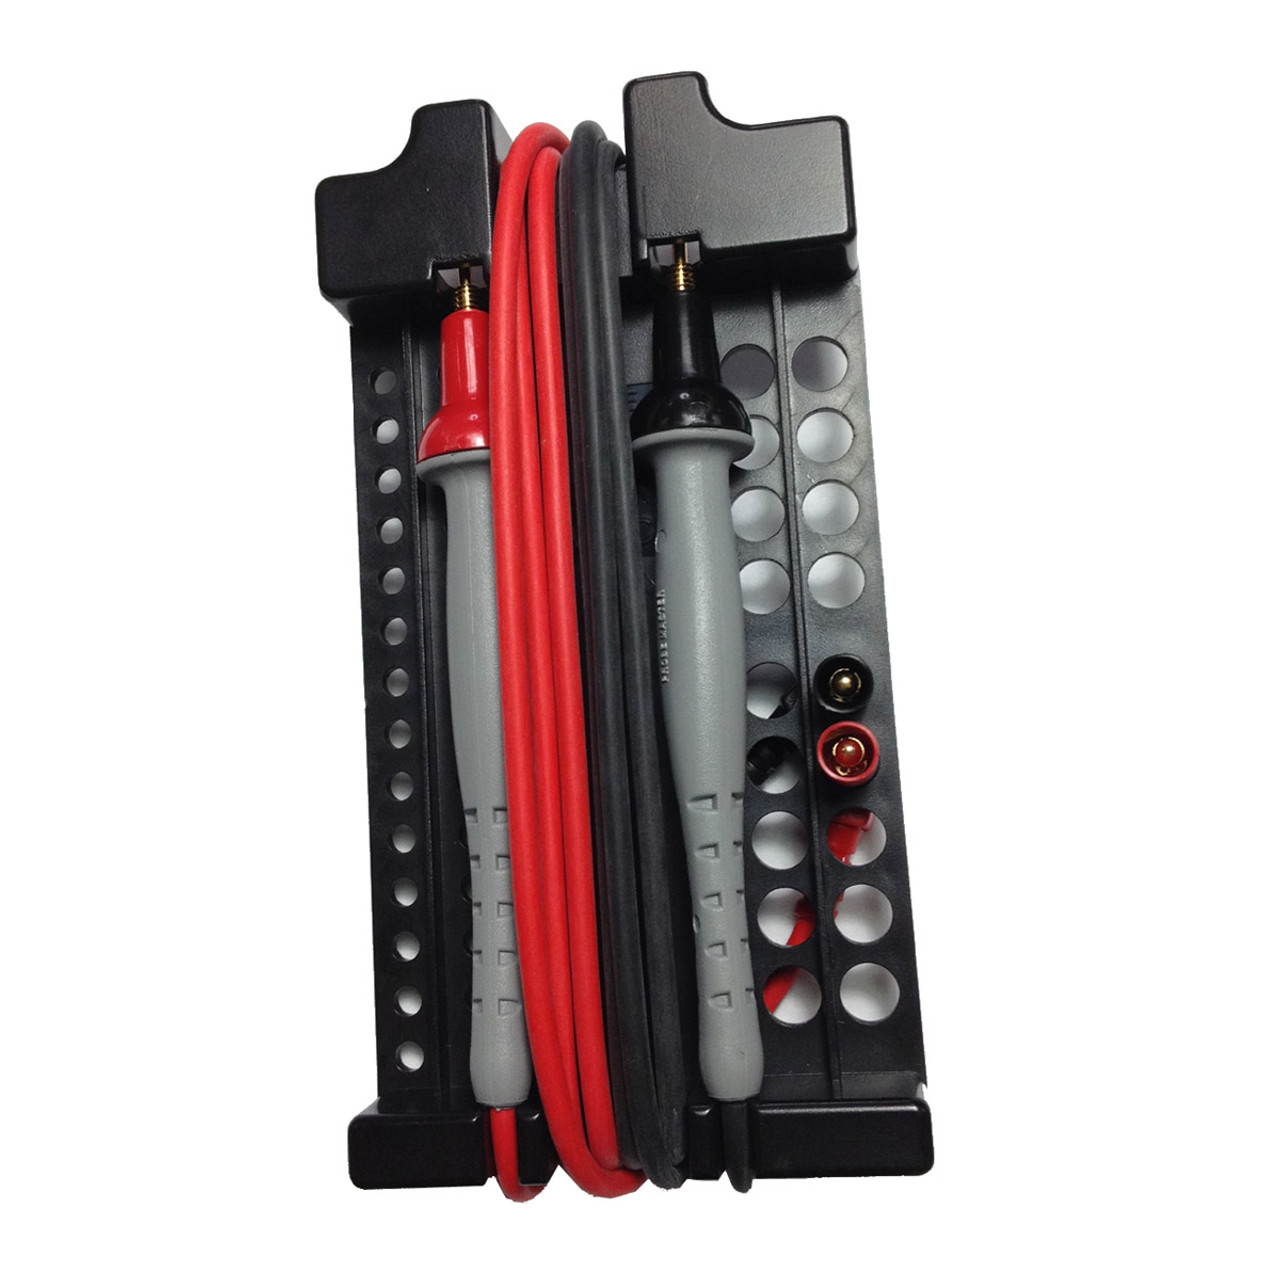 Test leads holders and storage